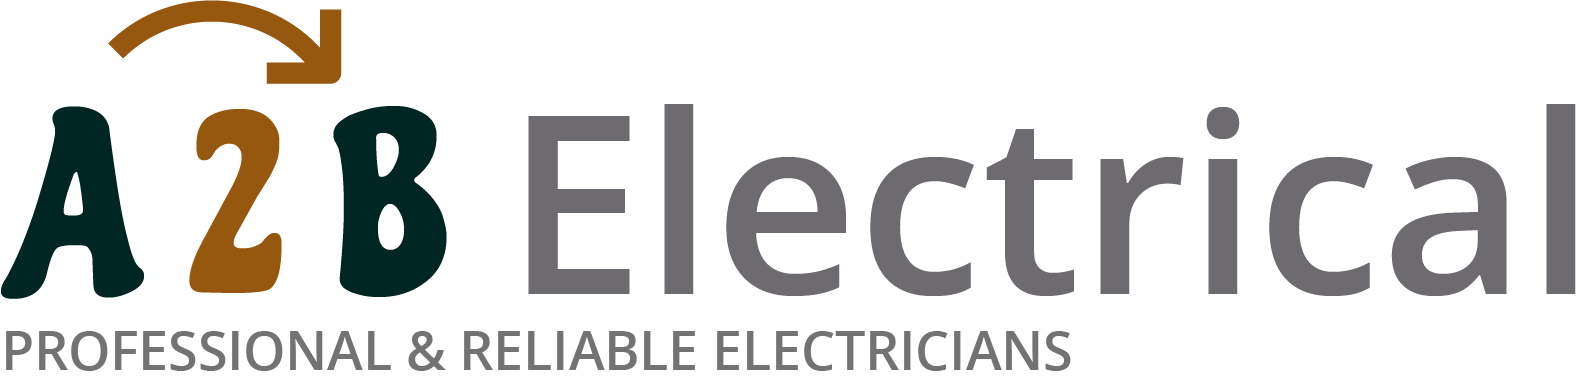 If you have electrical wiring problems in Loughton, we can provide an electrician to have a look for you.